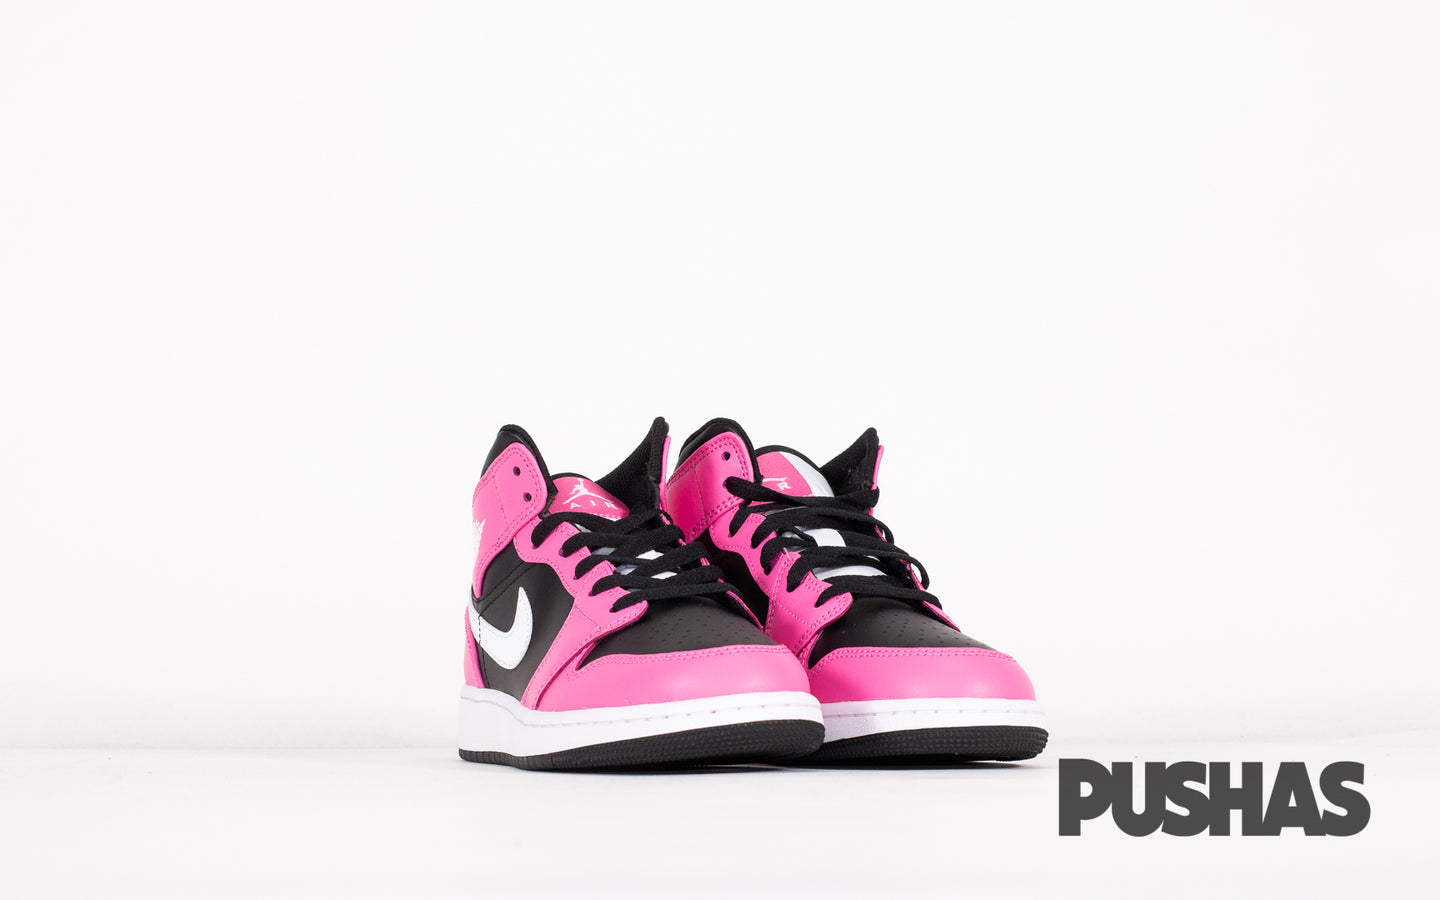 pushas-nike-Air-Jordan-1-Mid-Pinksicle